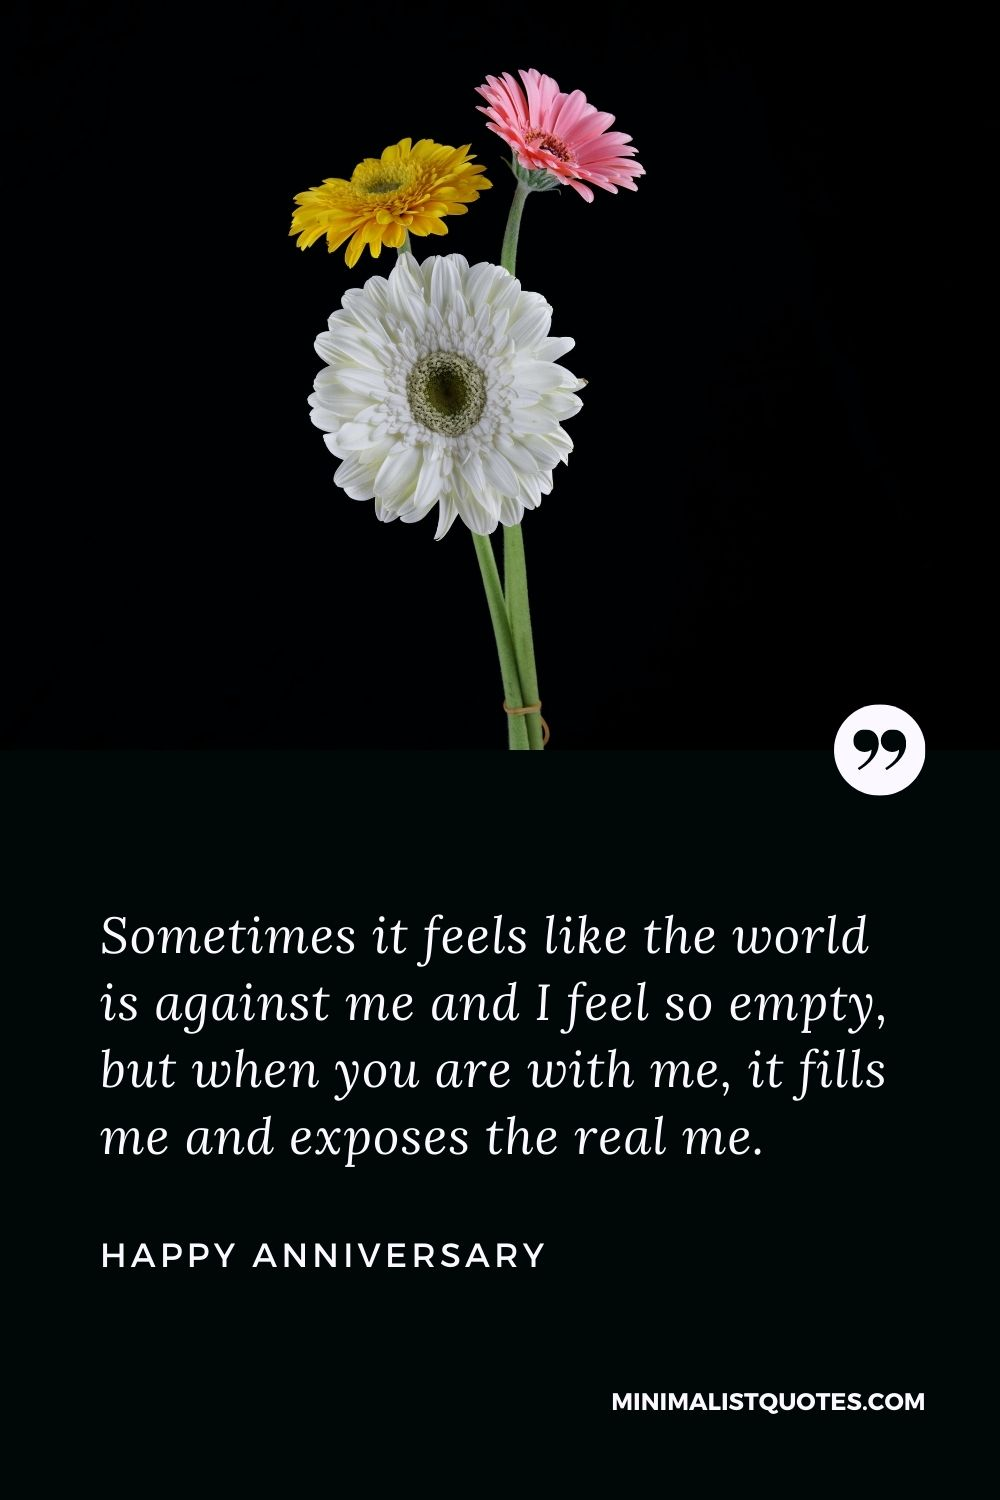 Anniversary wish, message & quote with HD image: Sometimes it feels like the world is against me and I feel so empty, but when you are with me, it fills me and exposes the real me. Happy Anniversary!